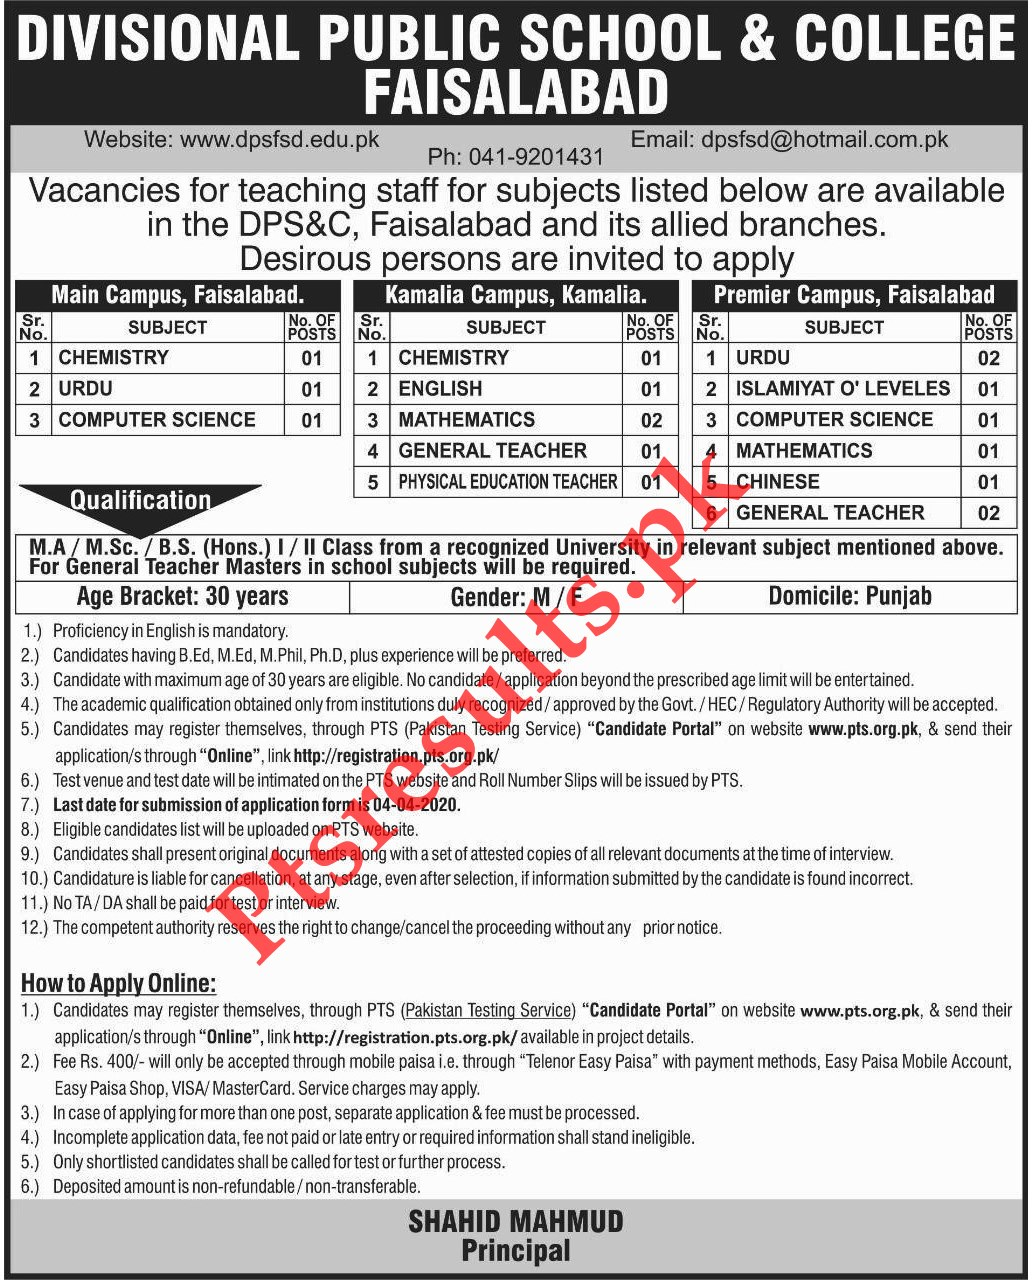 Divisional Public School & College Faisalabad PTS Jobs 2020 Apply Online Roll No Slip